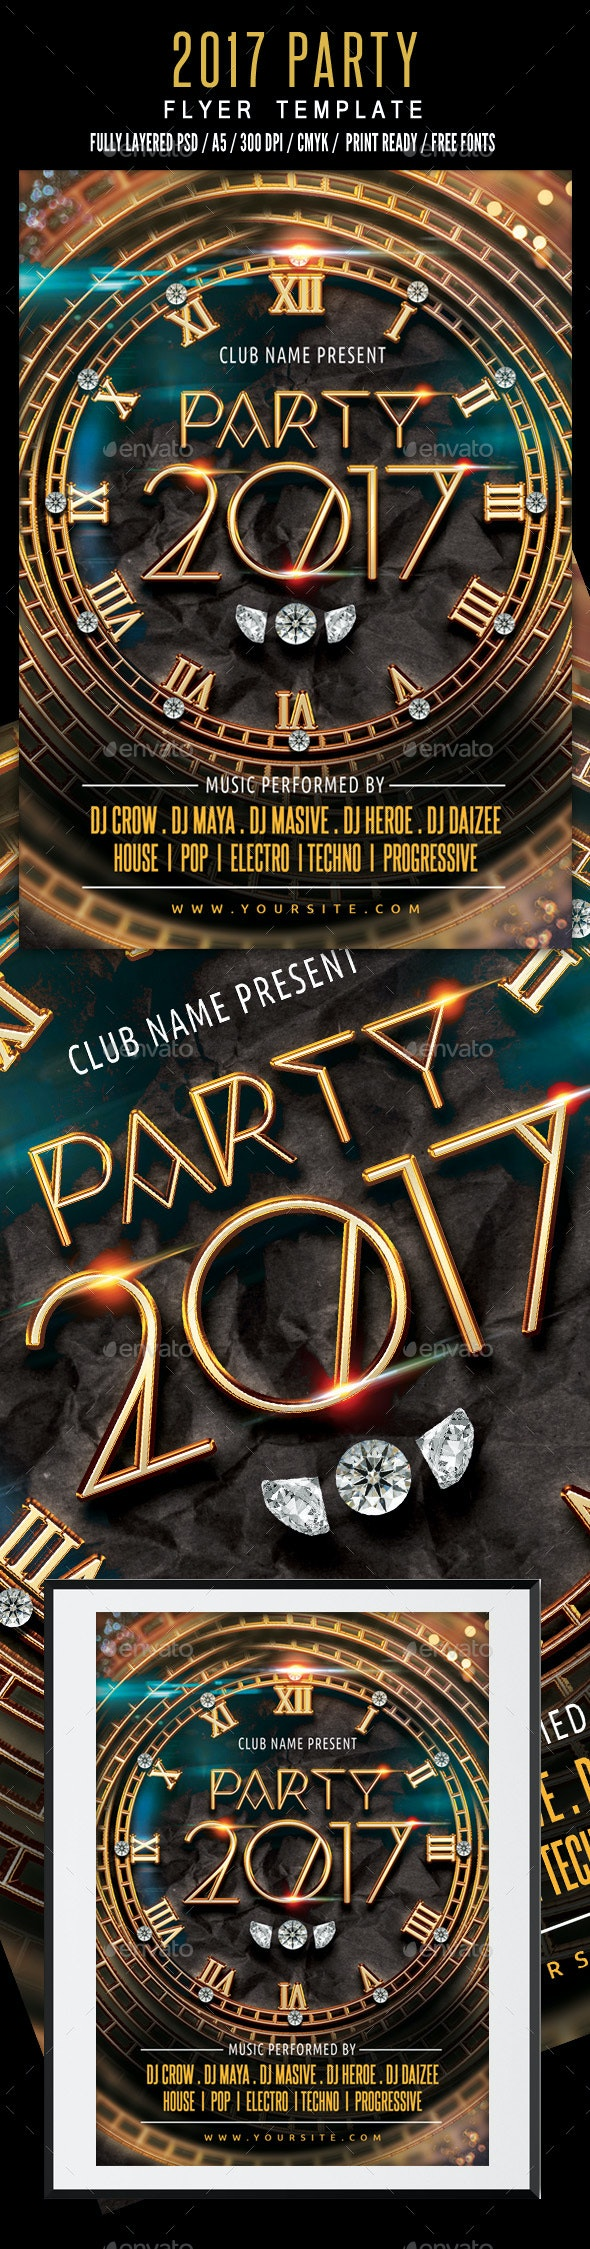 New Year 2017 Party Flyer Template - Events Flyers